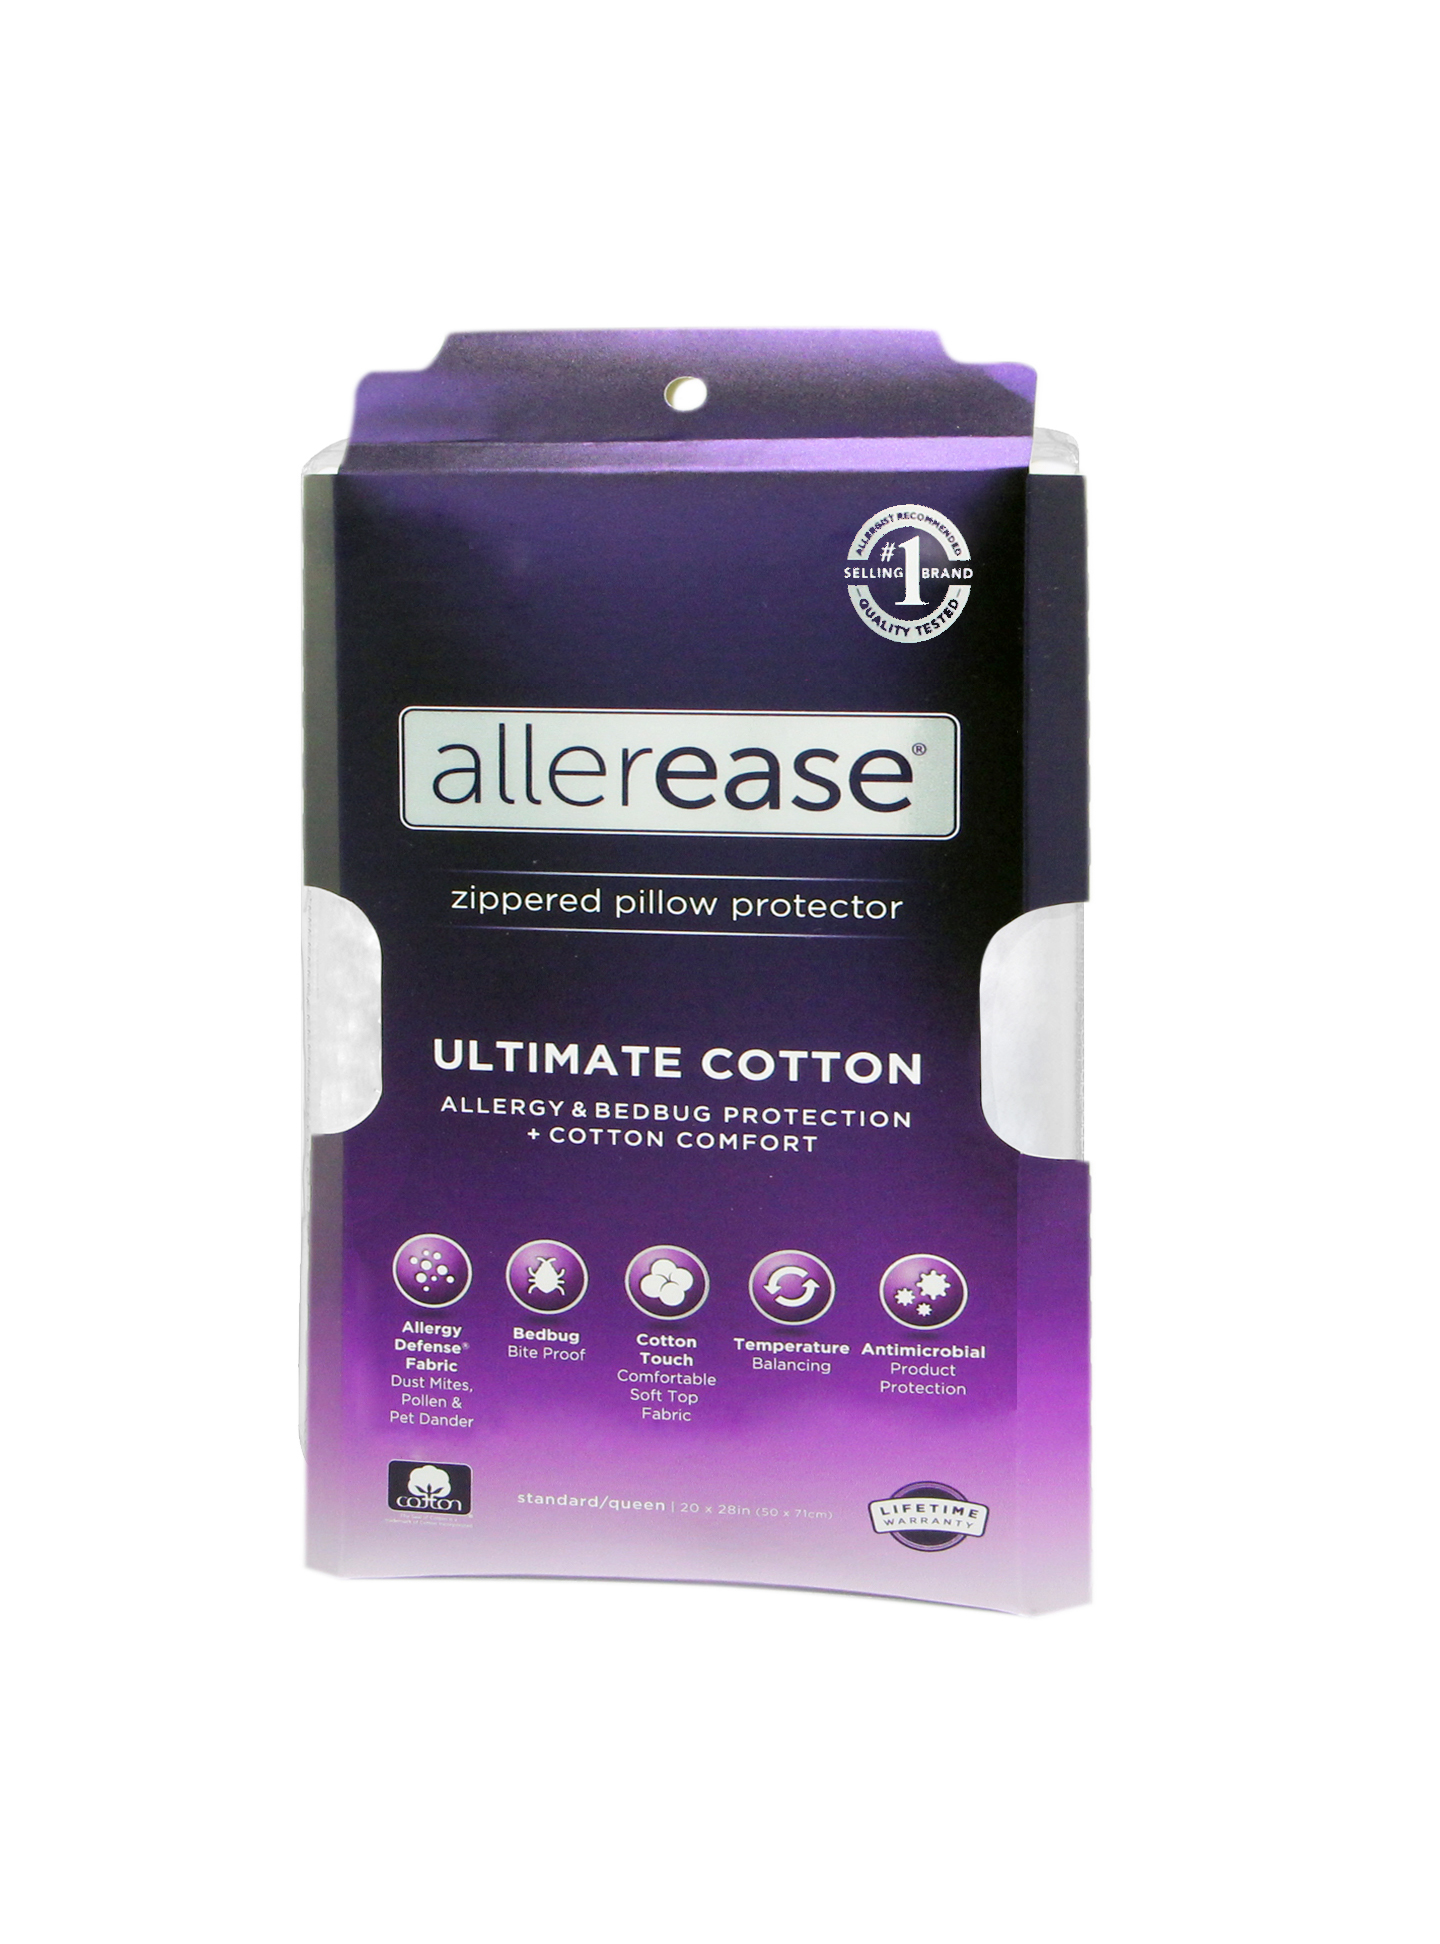 Allerease Ultimate Cotton Mattress Protector